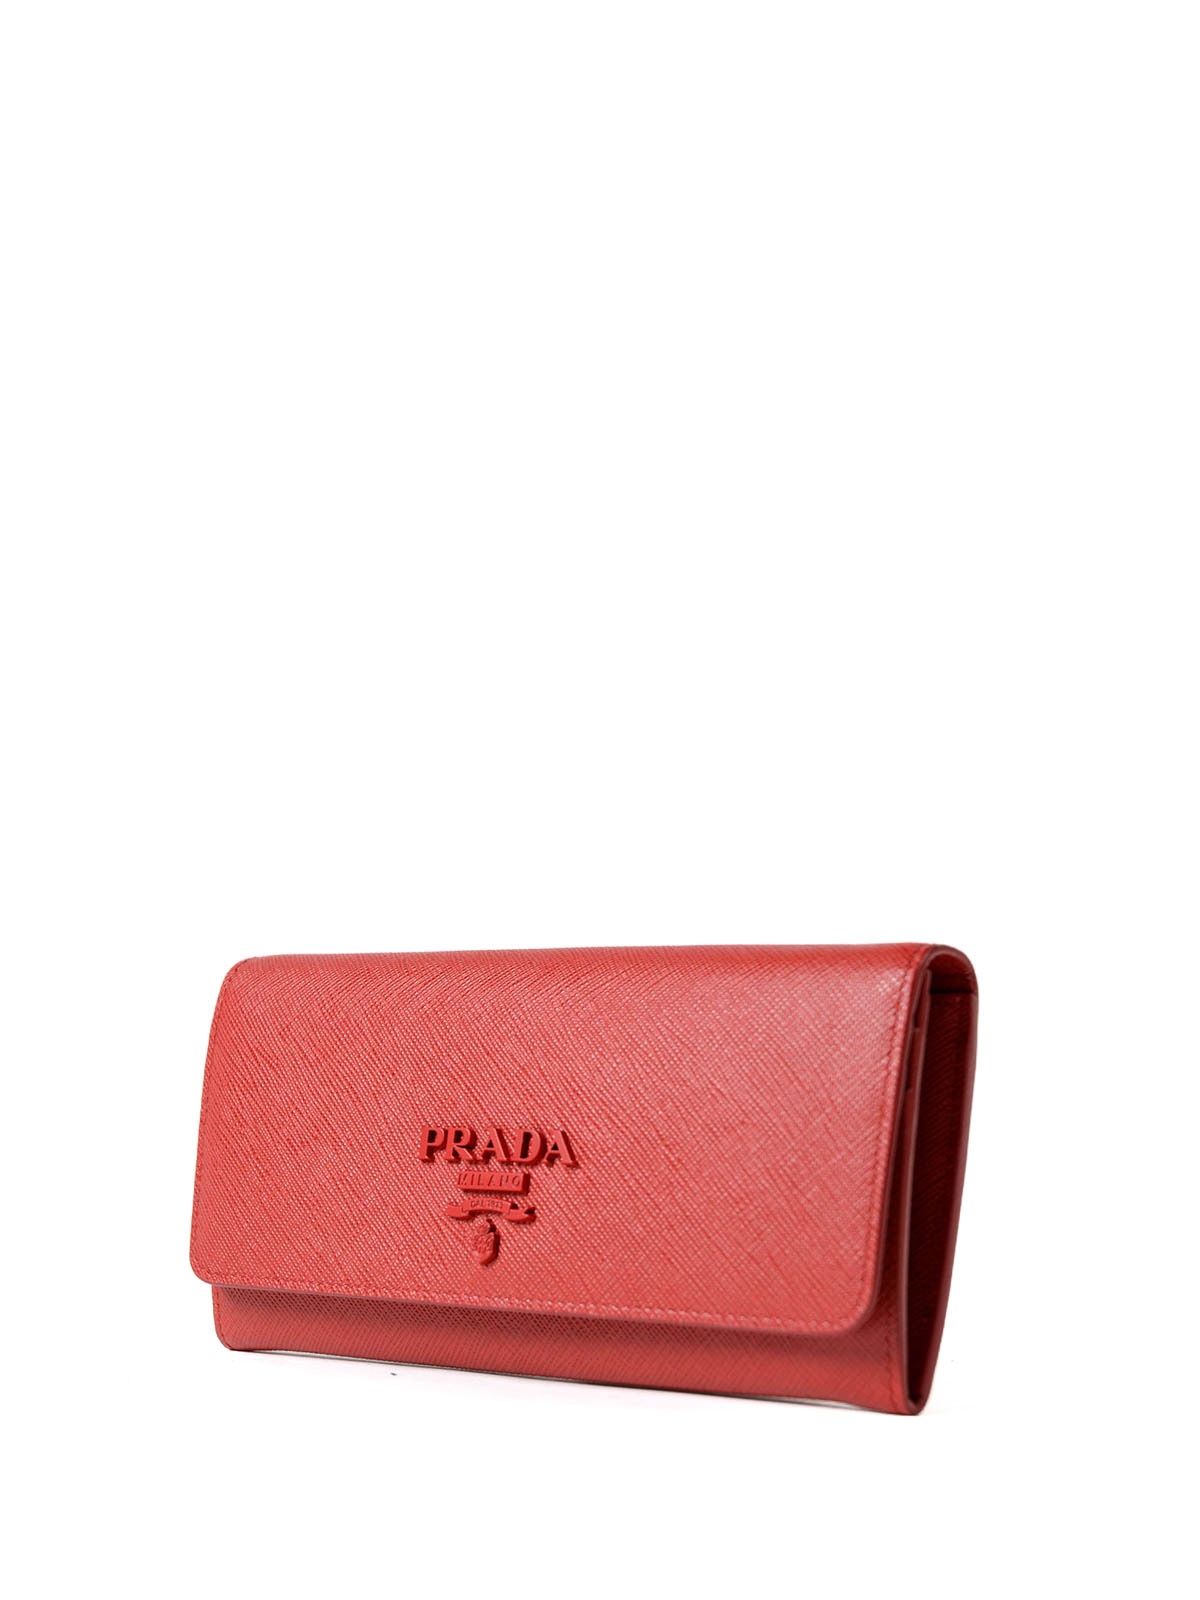 33844c90c072 PRADA: wallets & purses online - Red saffiano continental wallet